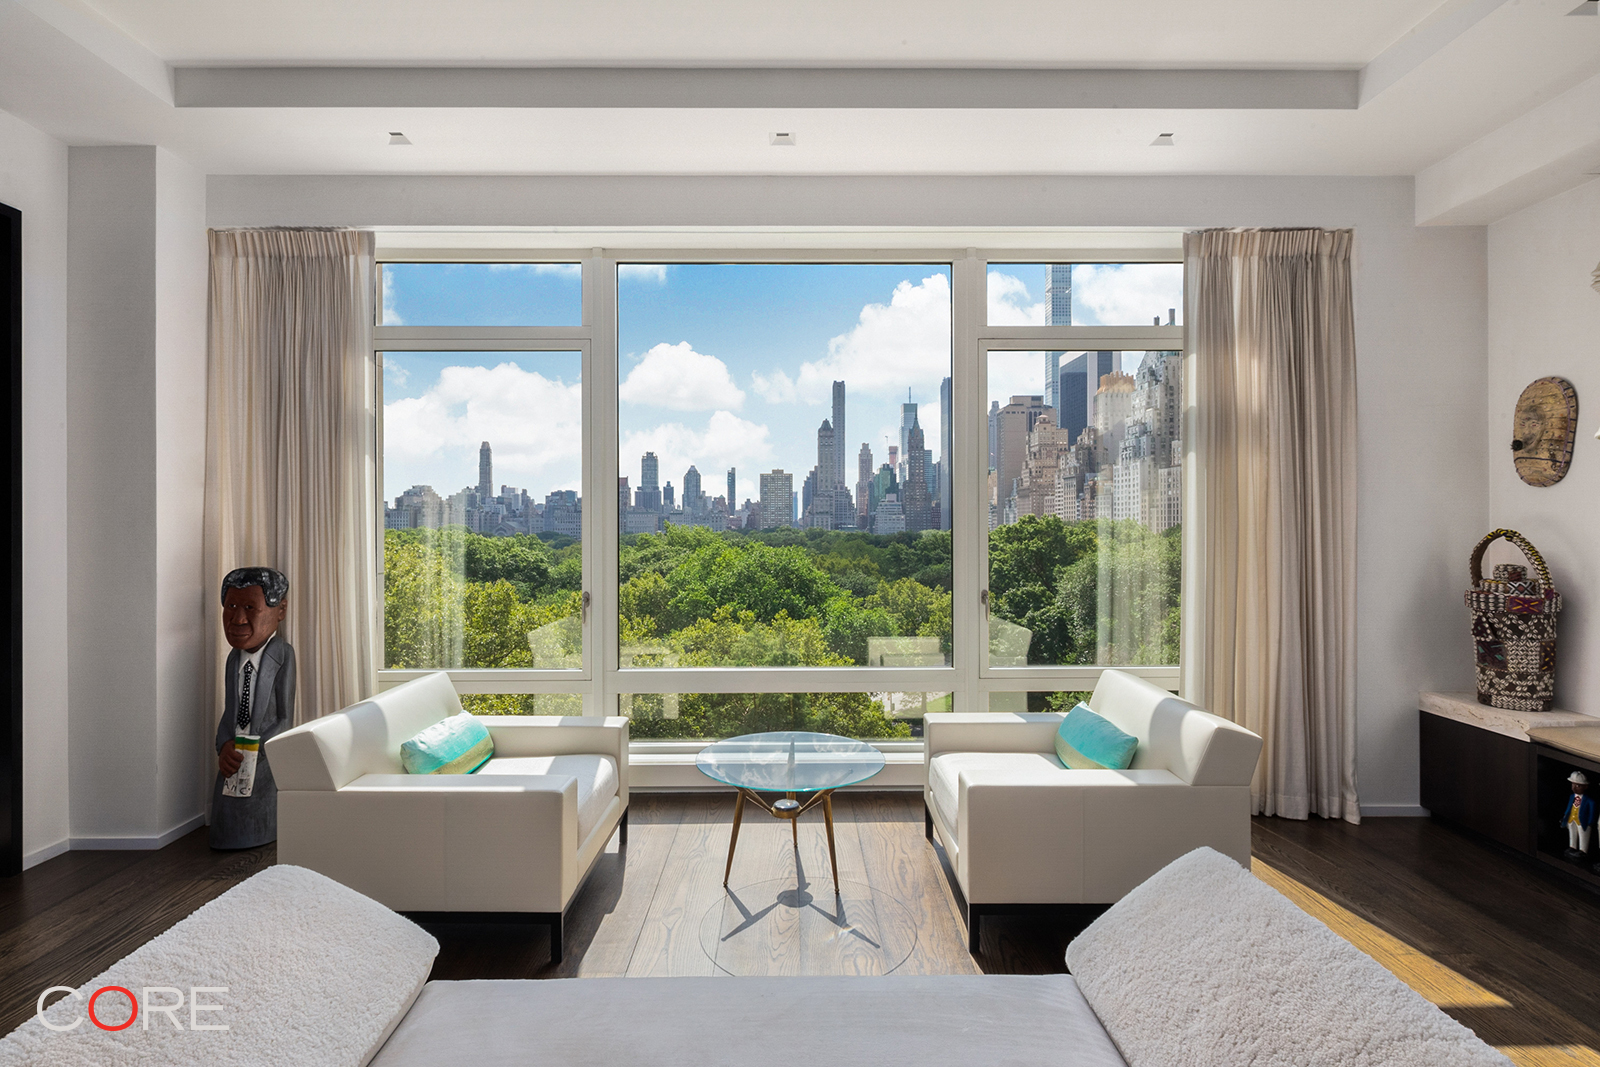 Never before has a property of this grandeur been offered at the prestigious 15 Central Park West. Introducing 9A, a one-of-a-kind home boasting all four exposures, this bespoke residence has been completely redesigned by Jeffrey Beers, offering the highest quality of design, scale and architecture.  Two years in the making, the space was transformed from the ground up with thoughtfully considered, dynamic elements that are complemented by a luxurious palette of materials expertly engineered, artfully crafted, and masterfully executed.  Upon entering, you are welcomed into this sun-drenched, four-bedroom home through a proper foyer which leads to the central gallery. Breathtaking southern and eastern exposures of Central Park are showcased in the generously-sized living room, dining room, library and kitchen. Large, custom floor-to-ceiling glass-panel and bronze sliding doors marry the dining and living room, creating an open yet versatile entertaining space.  The fully renovated, chef's kitchen was reconfigured to highlight views of Central Park and is stylishly outfitted with Solid Zebrawood island countertop and shelving. No stone left unturned, the kitchen is equipped with top-of-the-line appliances including a Sub-Zero refrigerator and wine refrigerator, two Miele dishwashers, and a fully vented Thermador six-burner cooktop with dual ovens, grill and griddle.  Overlooking Central Park, the lavish master suite encompasses complete functionality and comfort with a gel fireplace, two large walk-in closets, and a dressing room. Entirely finished in Italian Silver Travertine, the luxuriously appointed bathroom boasts a deep soaking tub, separate steam shower, two vanities, radiant heated floors and cove lighting which creates a spa-like essence.  Anchoring the west side of the home are three incredibly proportioned bedrooms with ample closet space and custom en-suite bathrooms. A home office, den, and laundry room with Maytag washer/dryer conclude the wing.  Additio